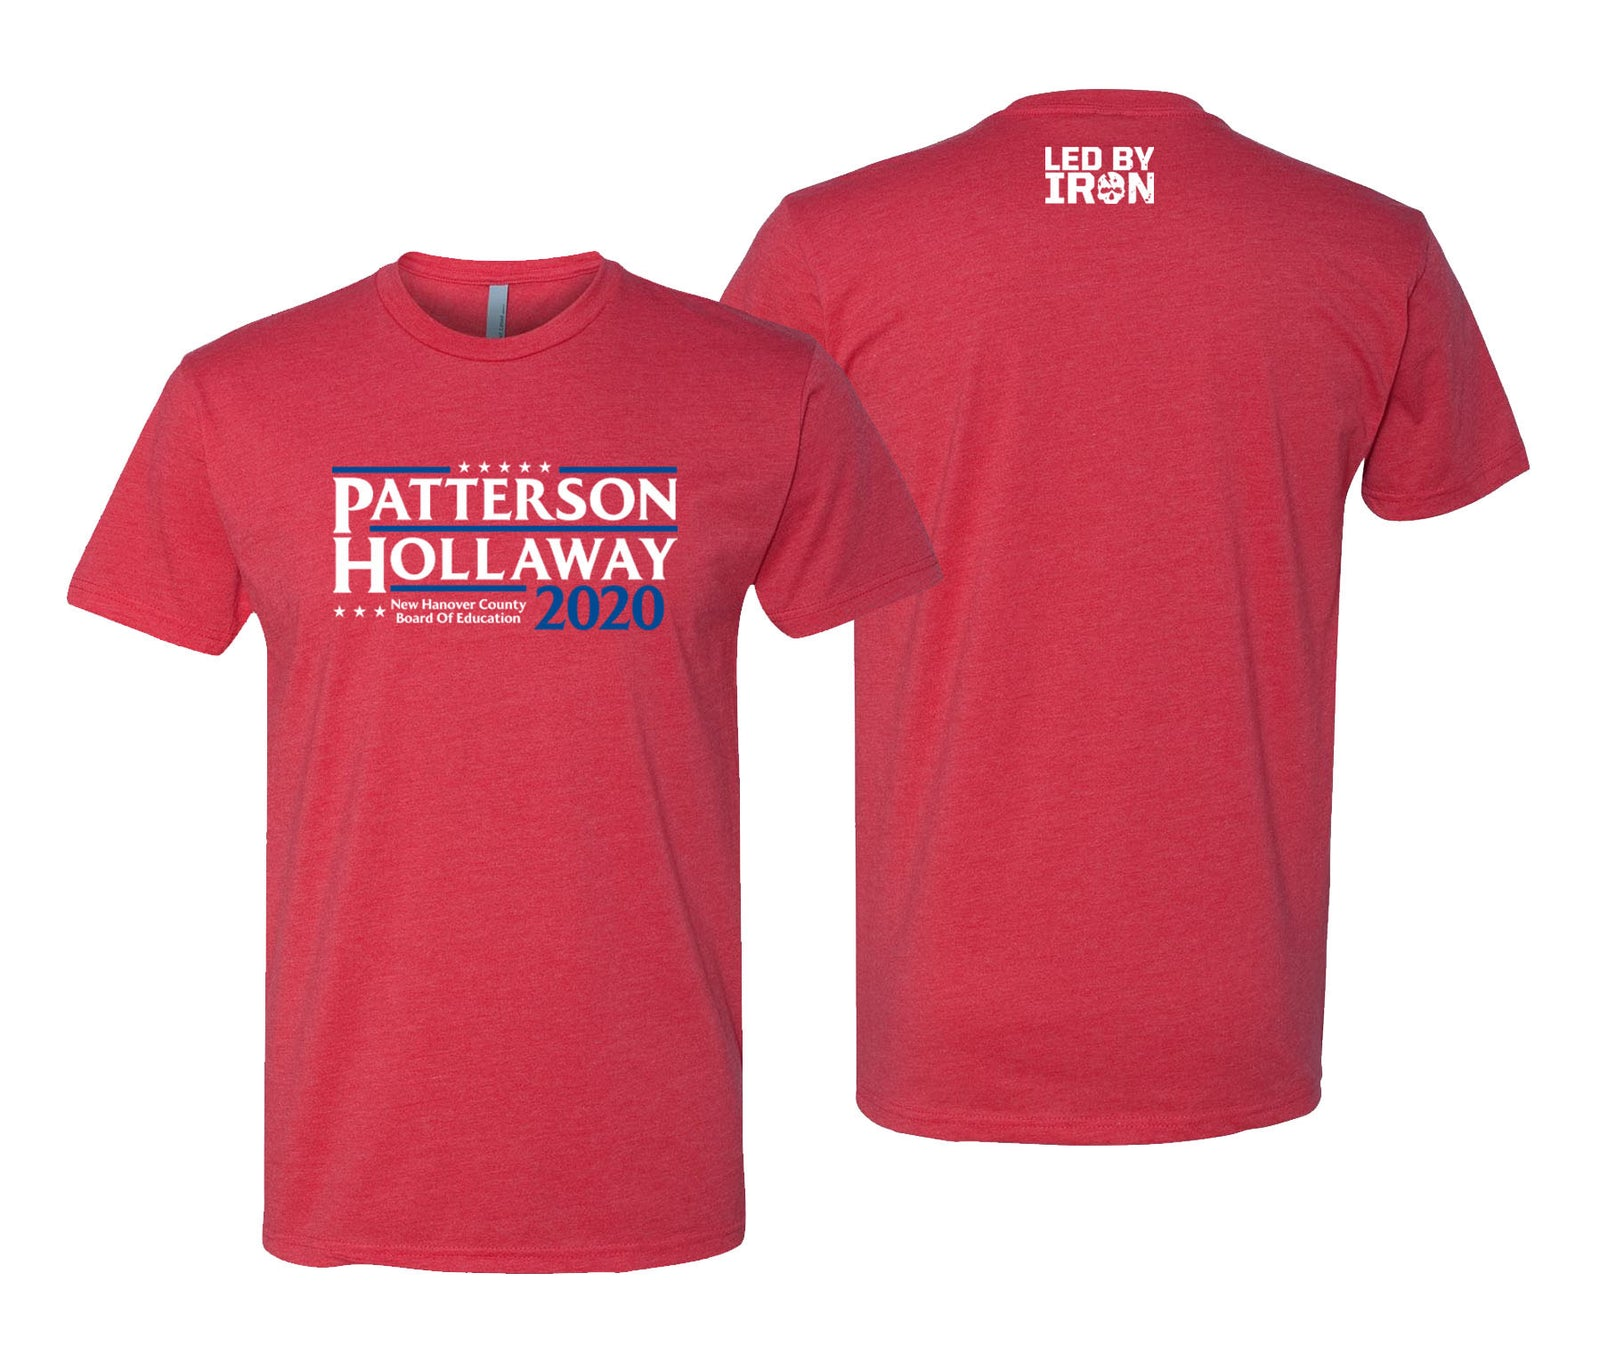 Patterson/Hollaway 2020